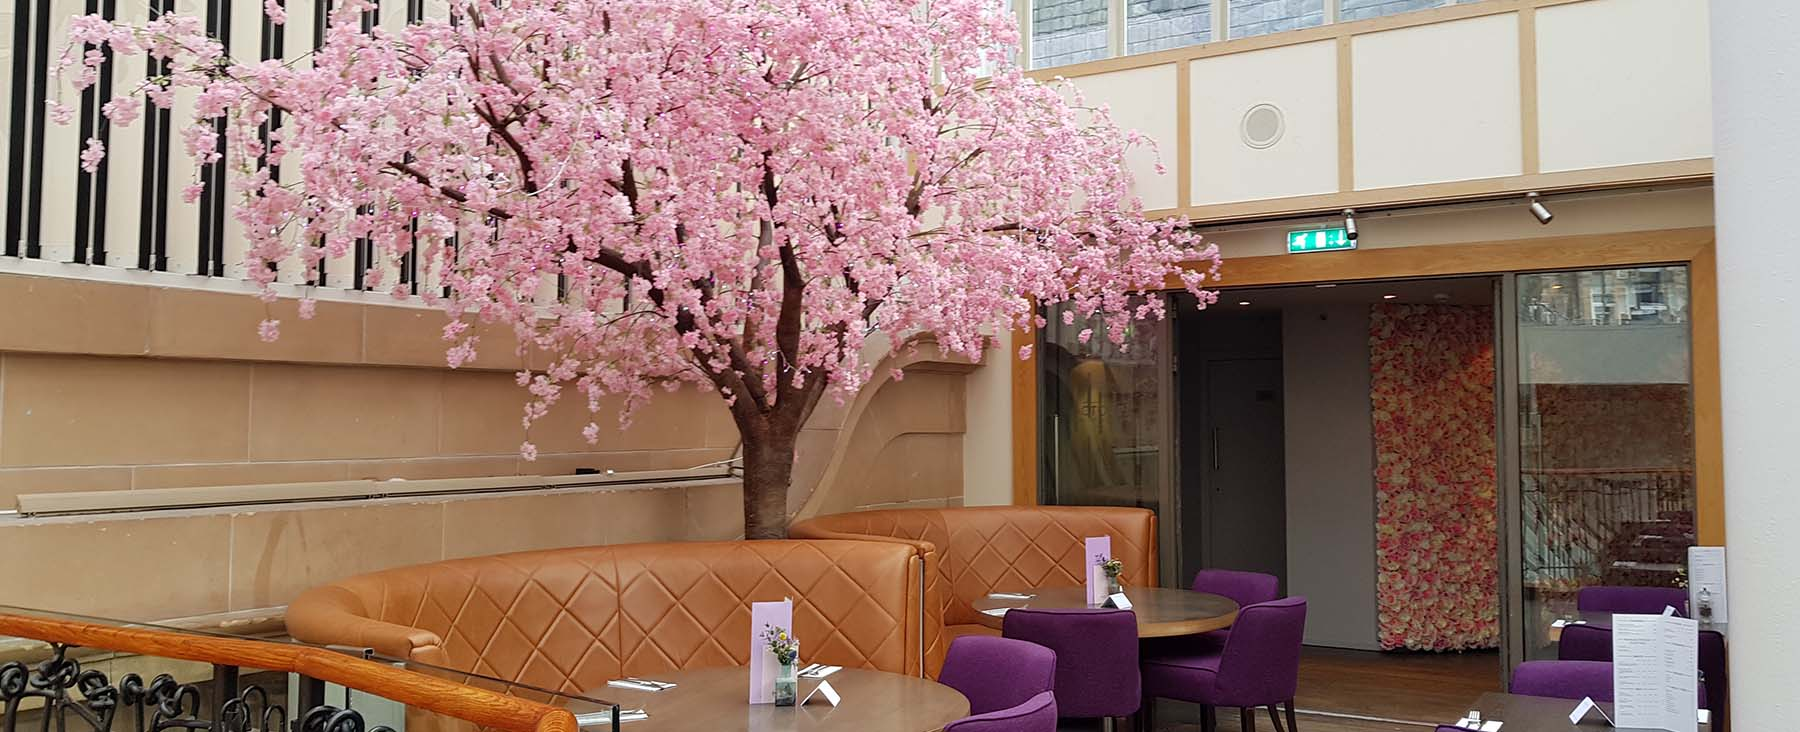 Giant artificial cherry blossom tree and pink rose filled selfie wall decorate the October cocktail bar in Glasgow's Princes Square